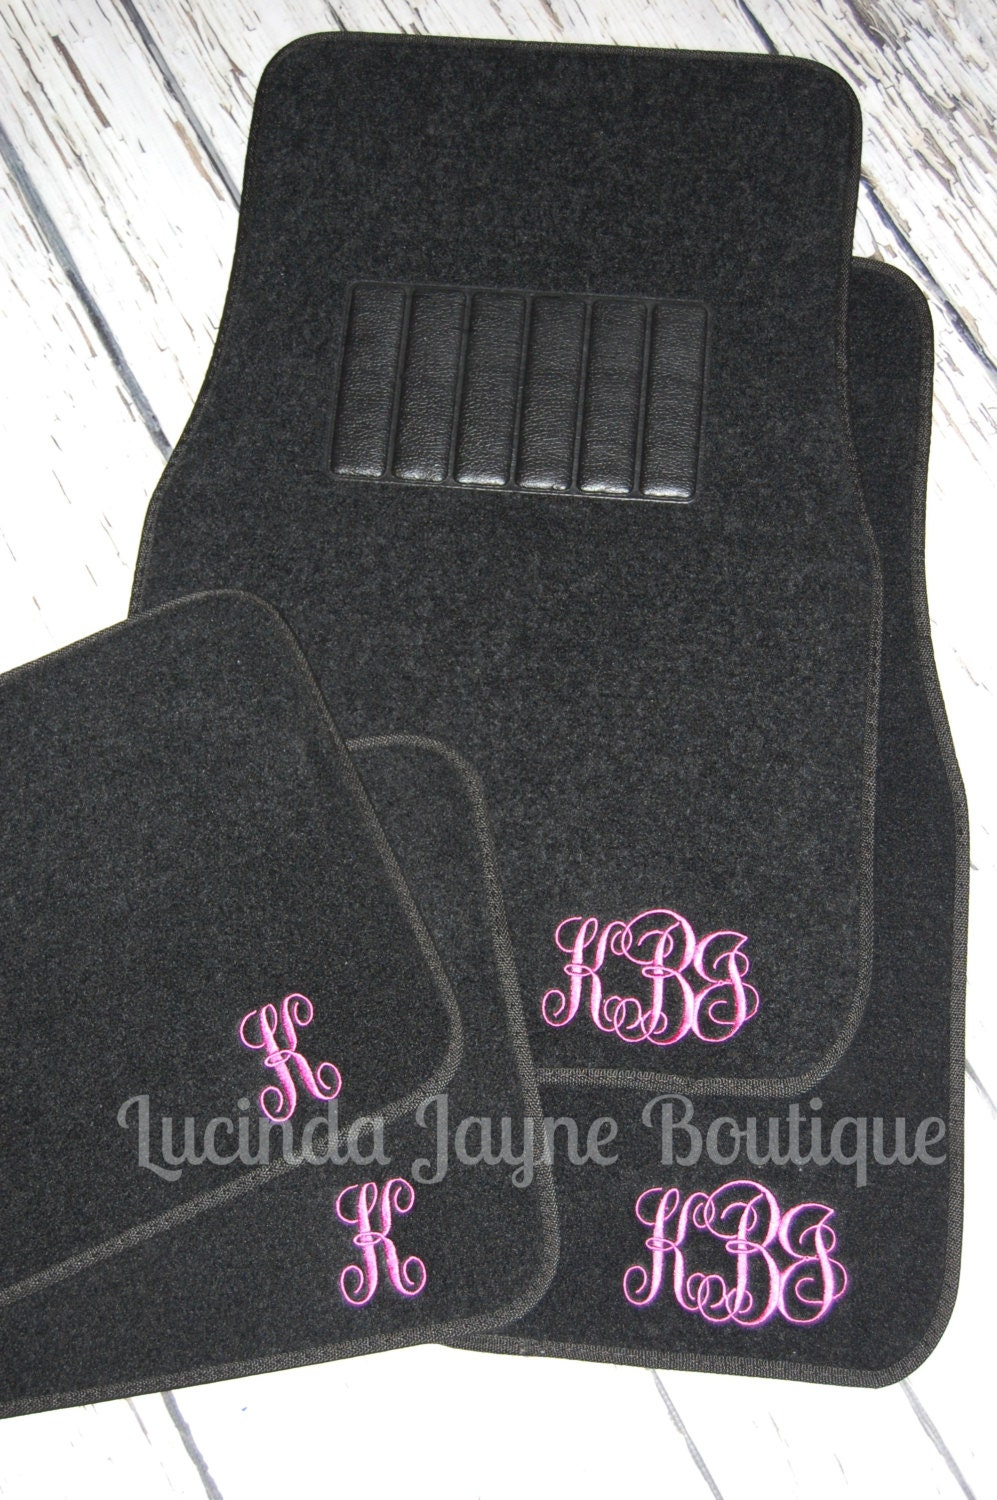 Floor mats dream cars - Monogrammed Black Car Floor Mats